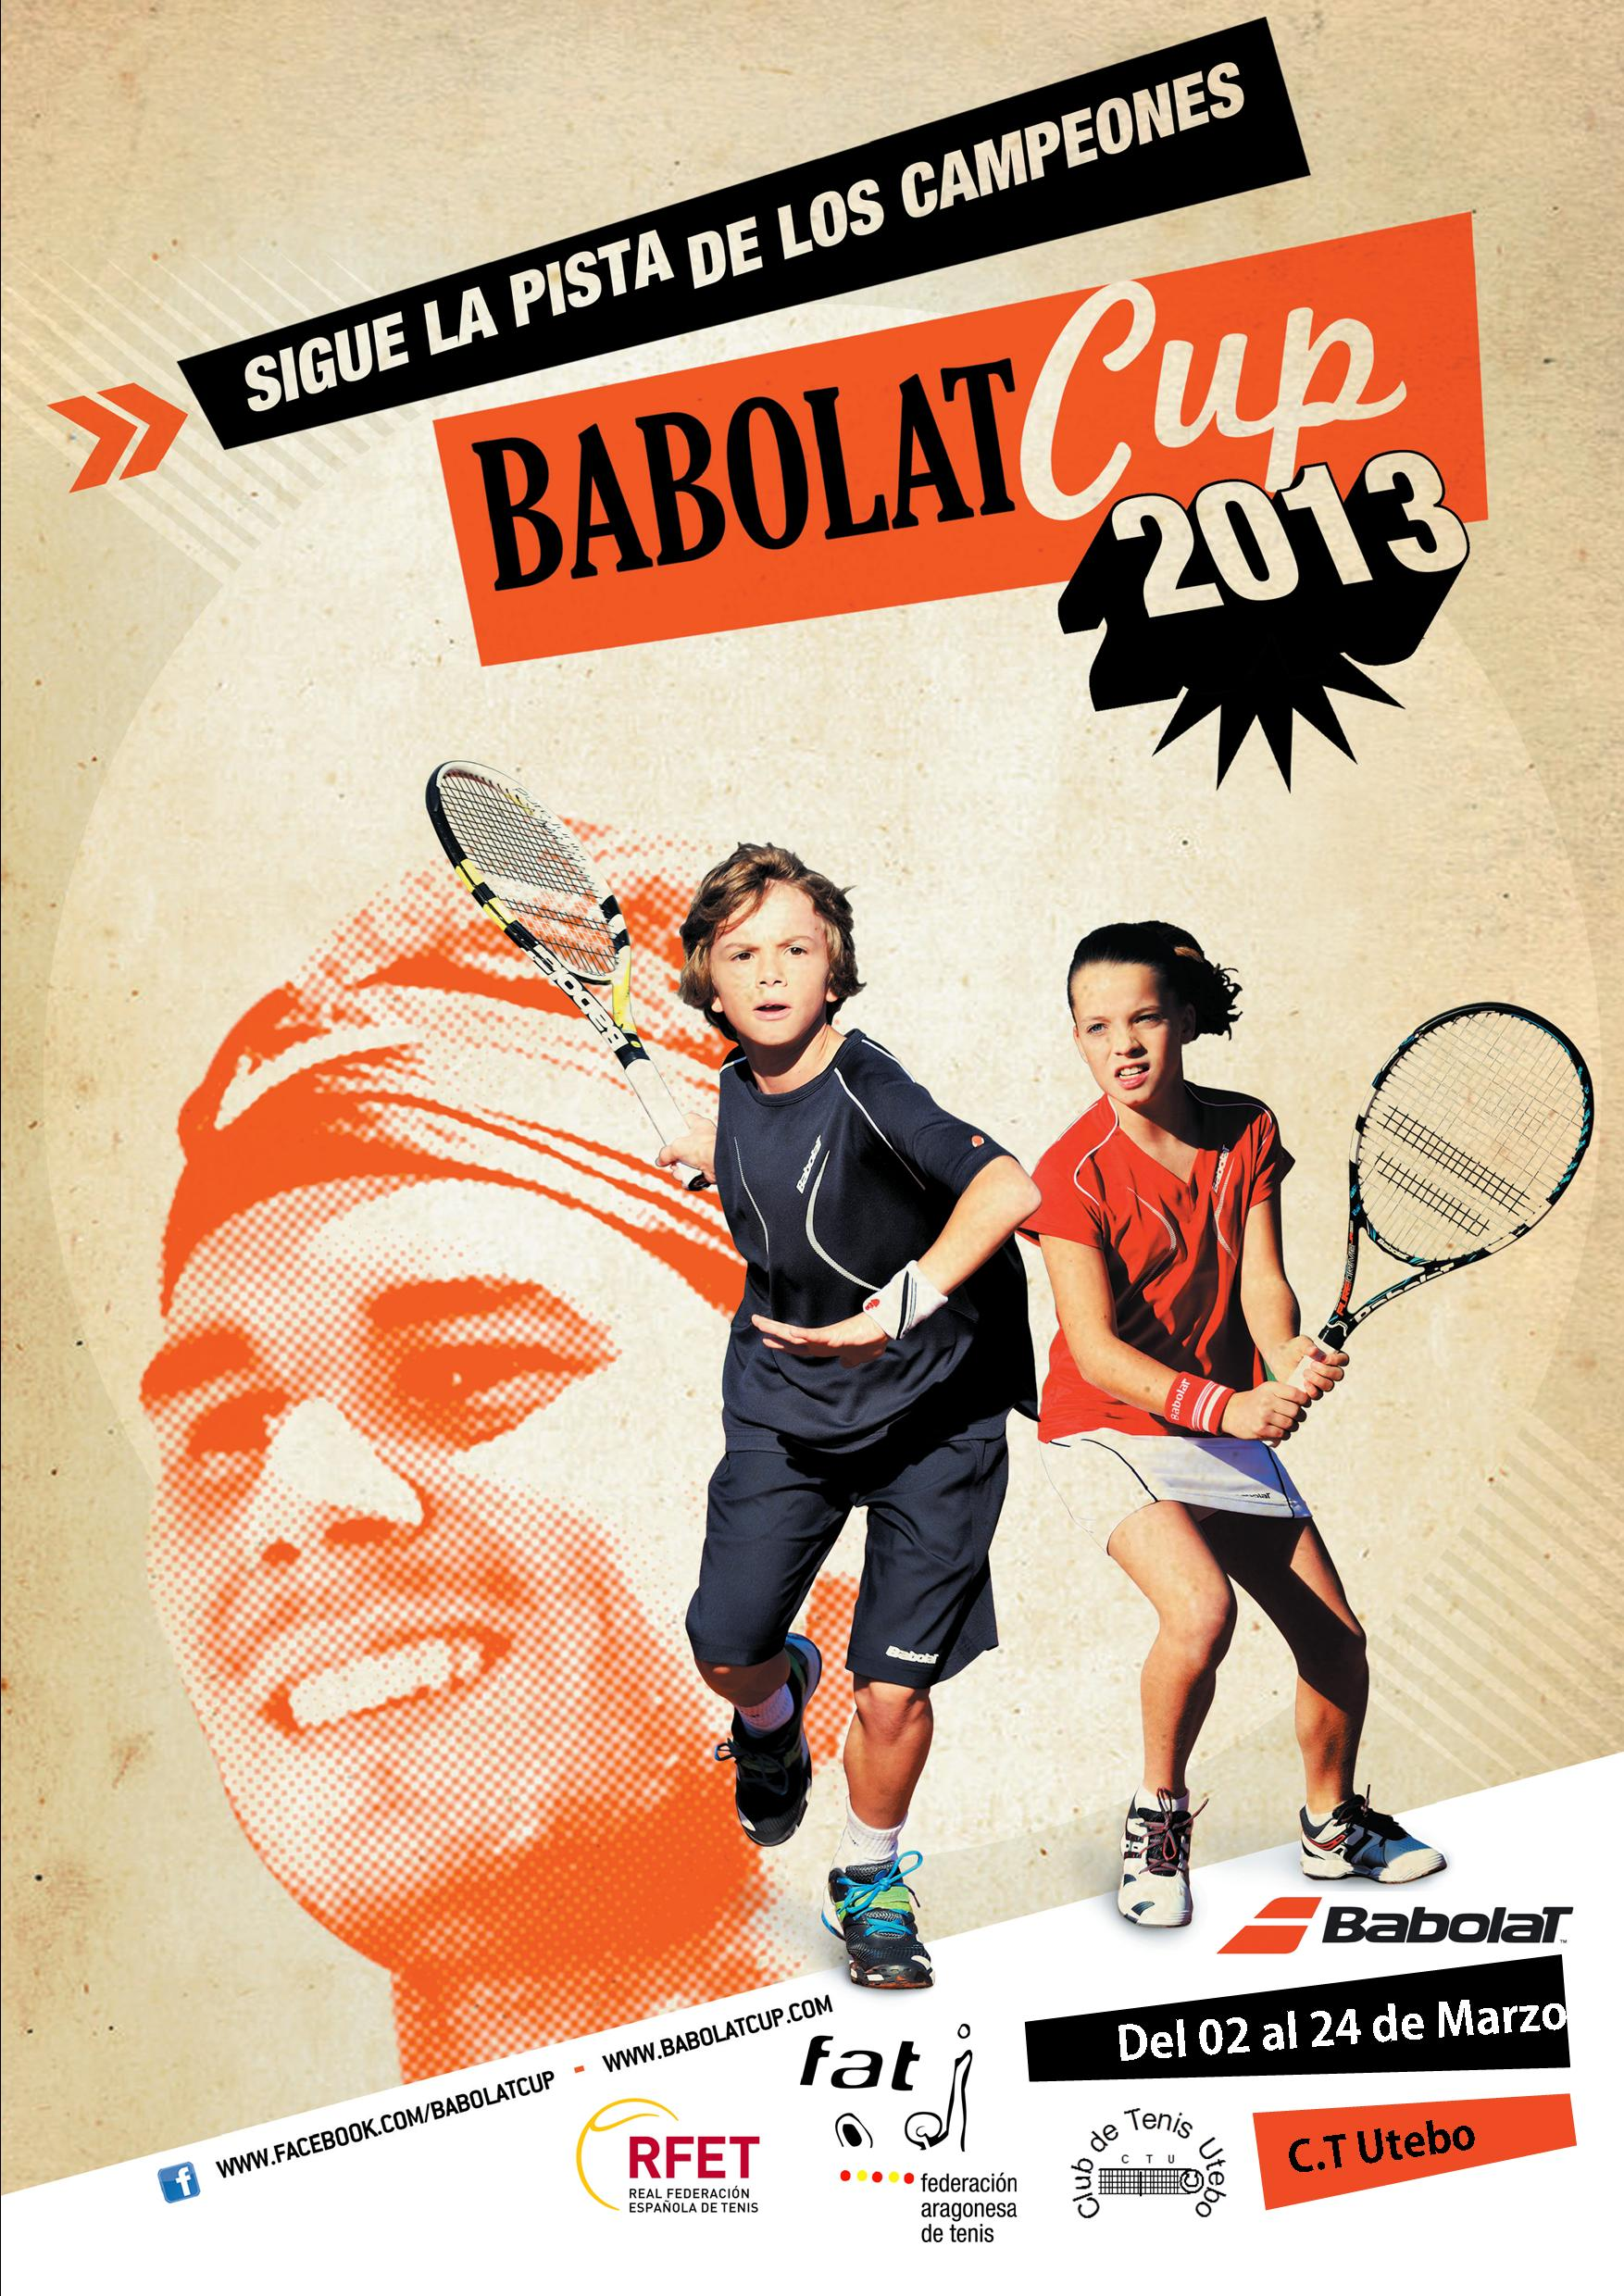 Cartel Babolat Cup 2013 C.T. Utebo